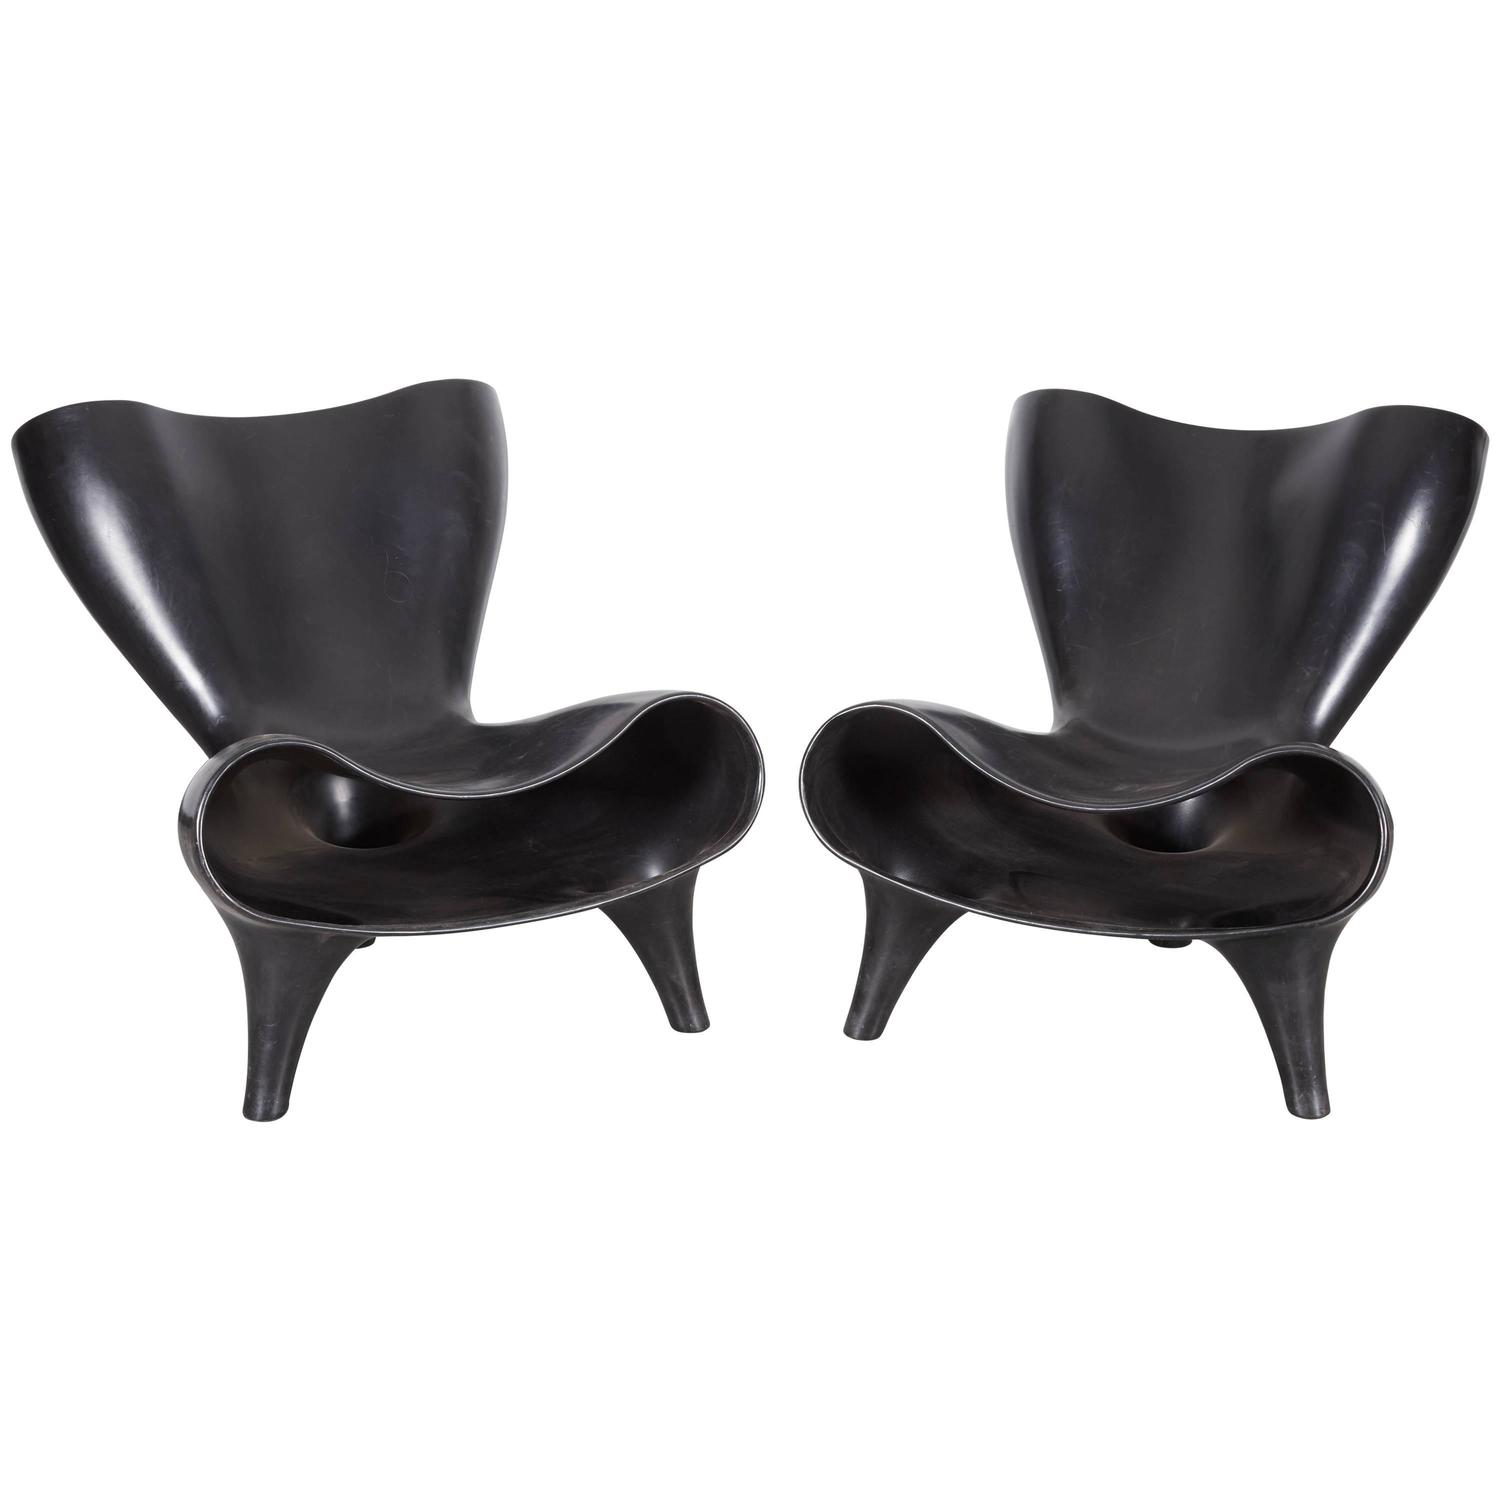 sc 1 st  1stDibs & Pair of Marc Newson Plastic Orgone Chairs at 1stdibs